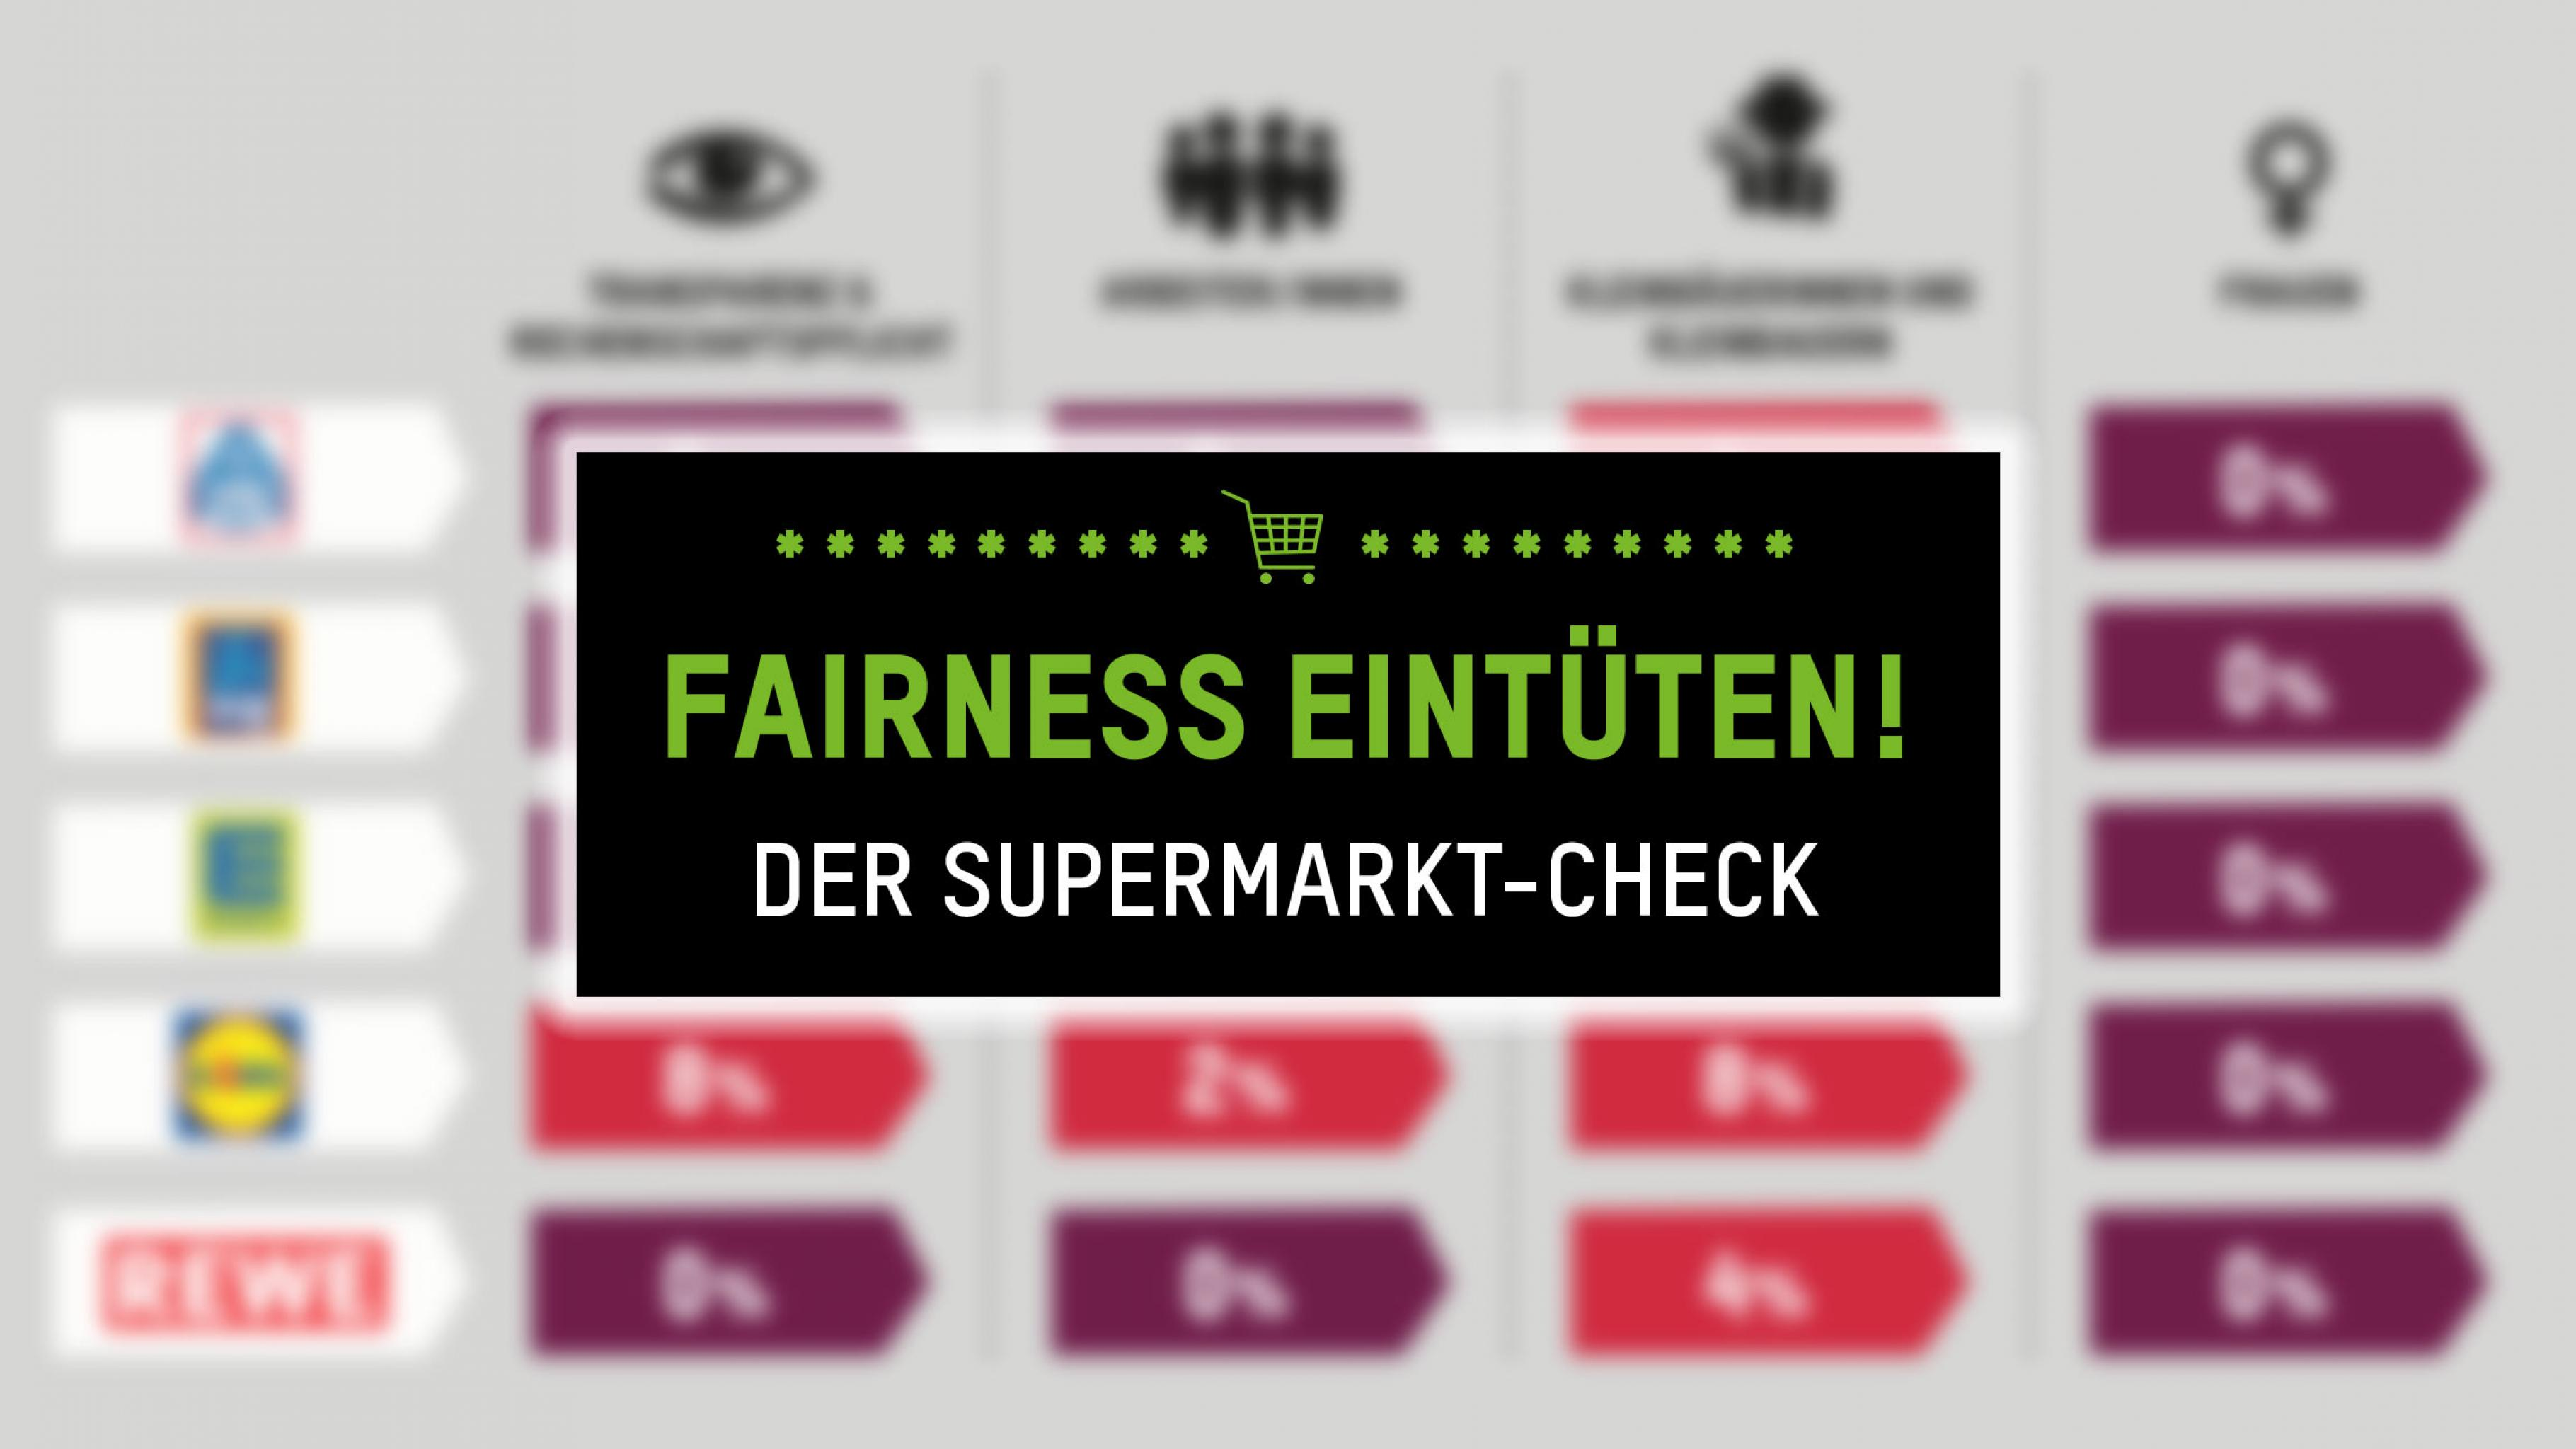 Fairness eintüten: Der Supermarkt-Check